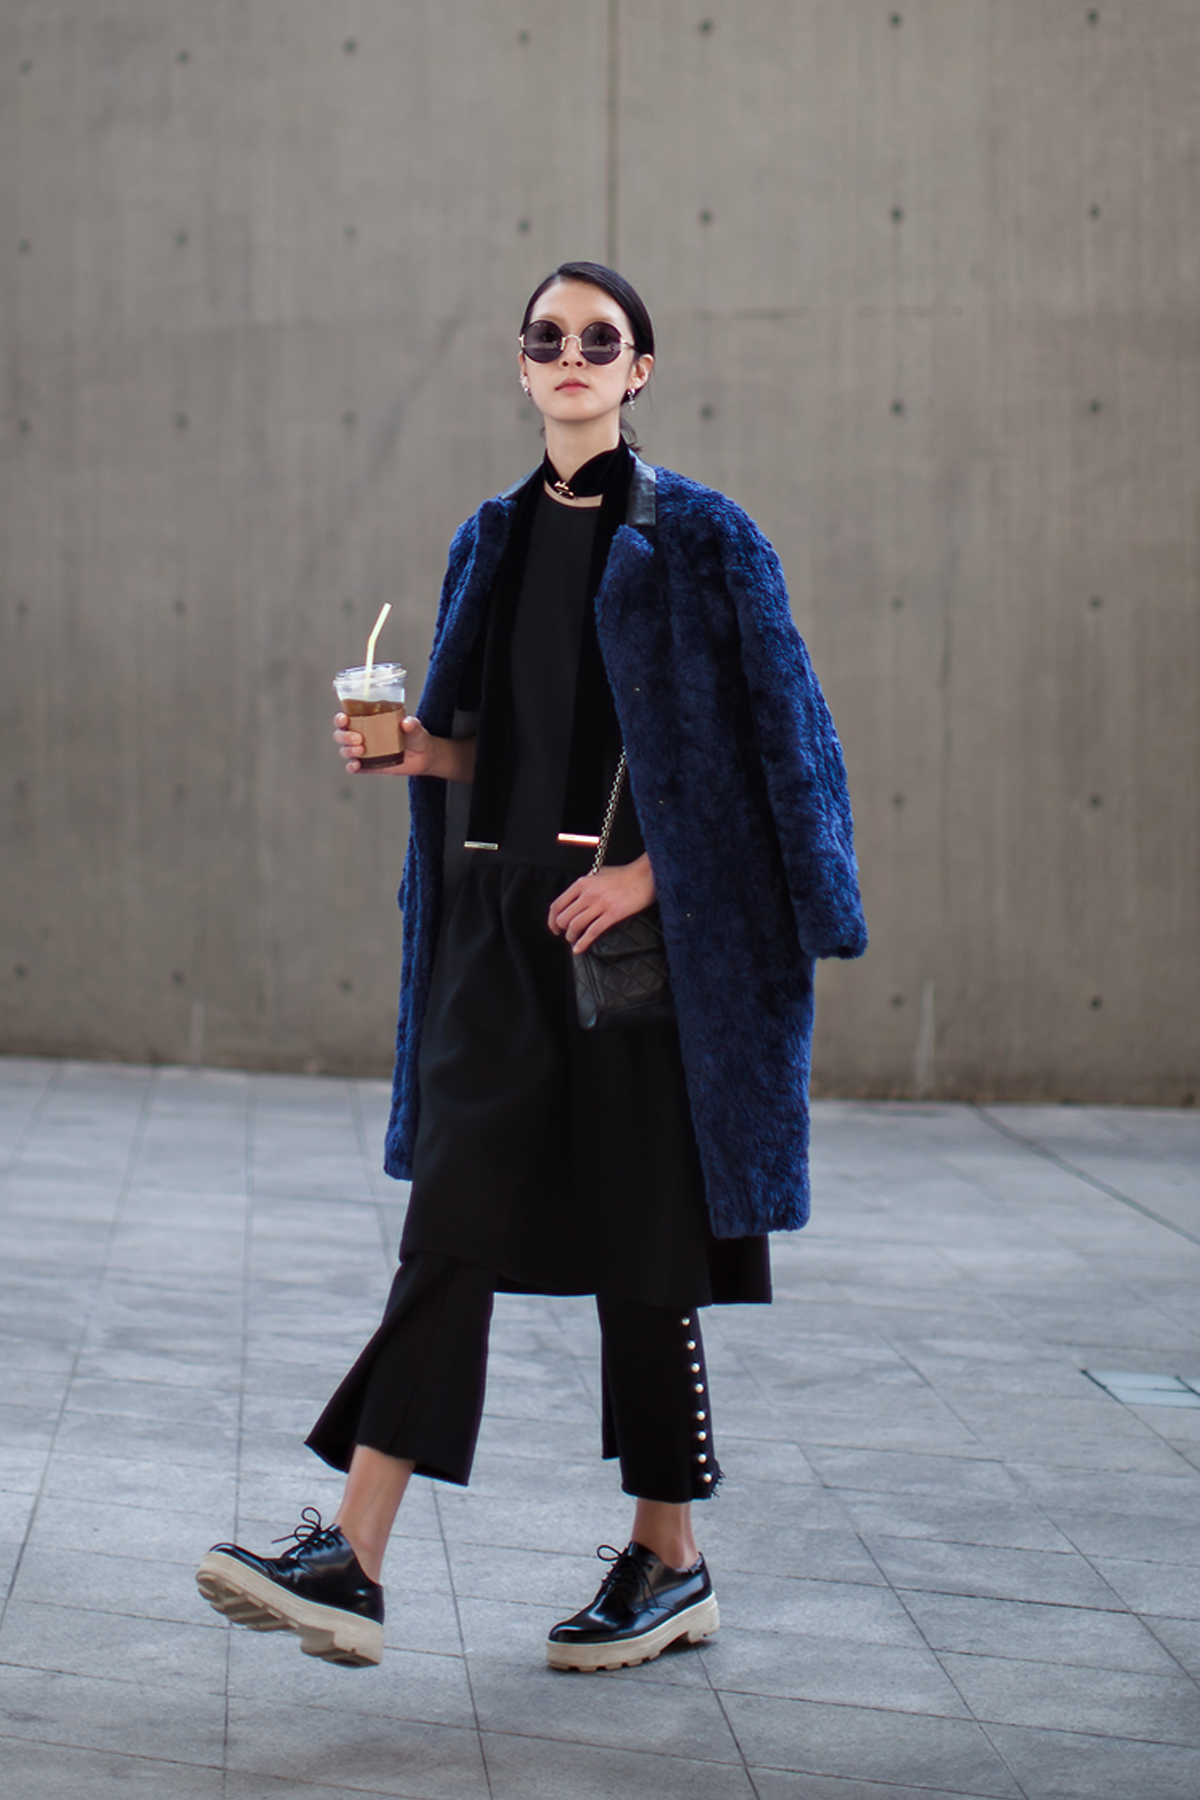 On the street… Kang Soyoung Seoul fashion week 2016 SS